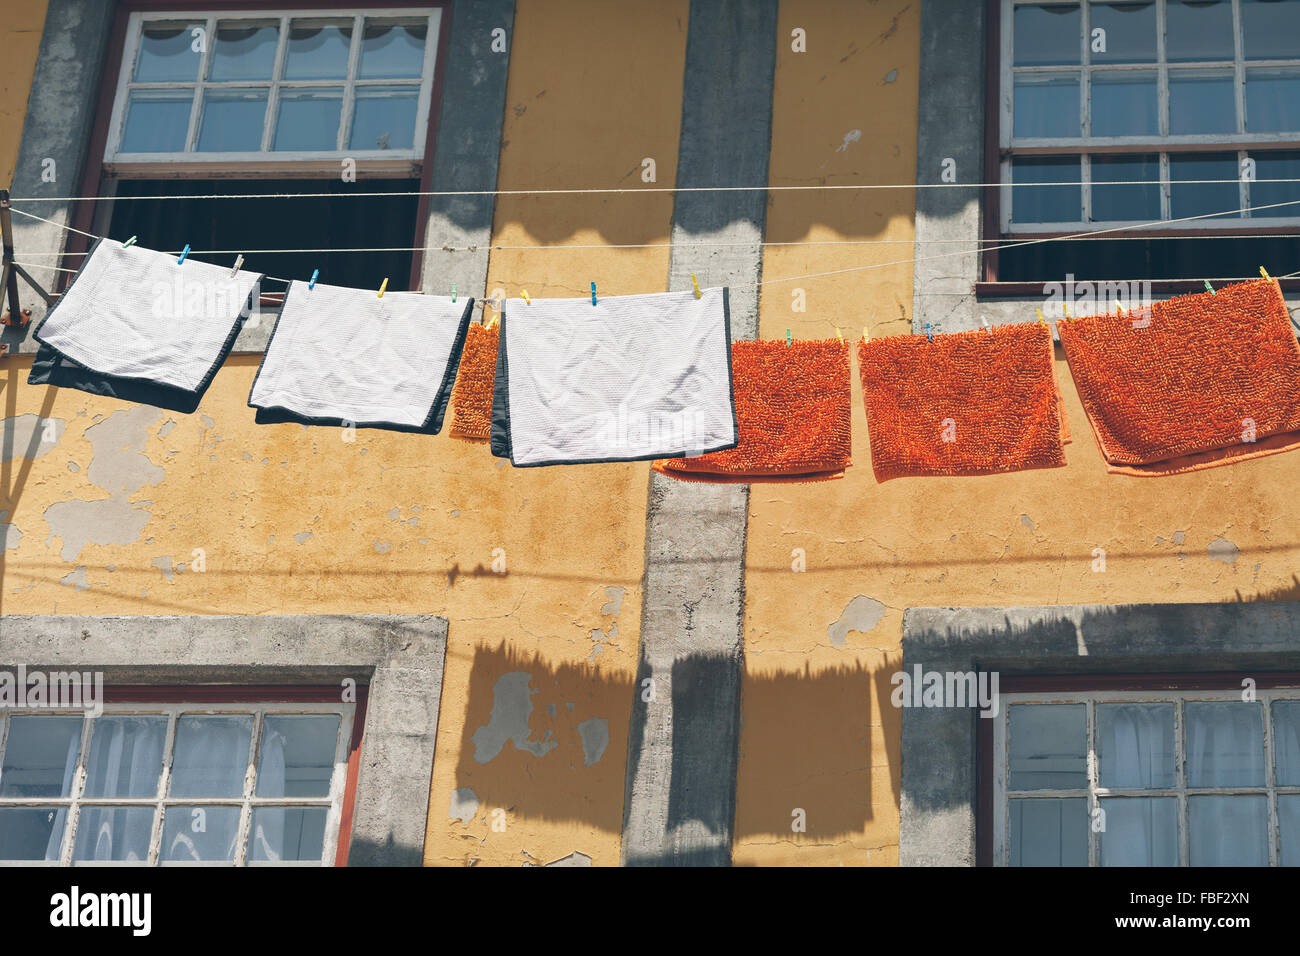 Low Angle View Of Clothesline Against Apartment Building - Stock Image